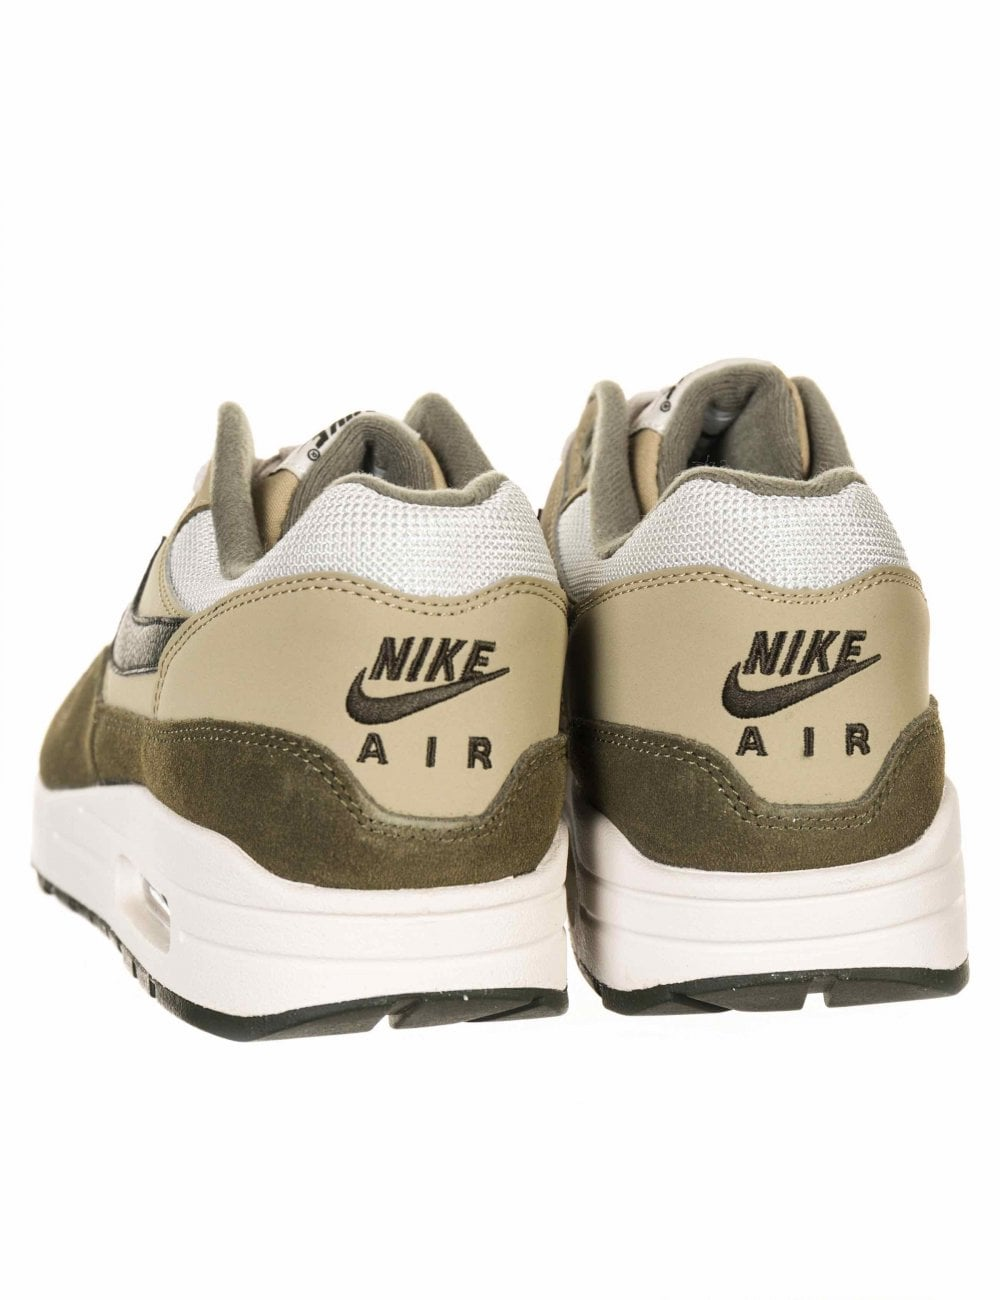 ad0a78ddb2e6 Nike Air Max 1 Trainers - Medium Olive Sequoia - Footwear from Fat ...